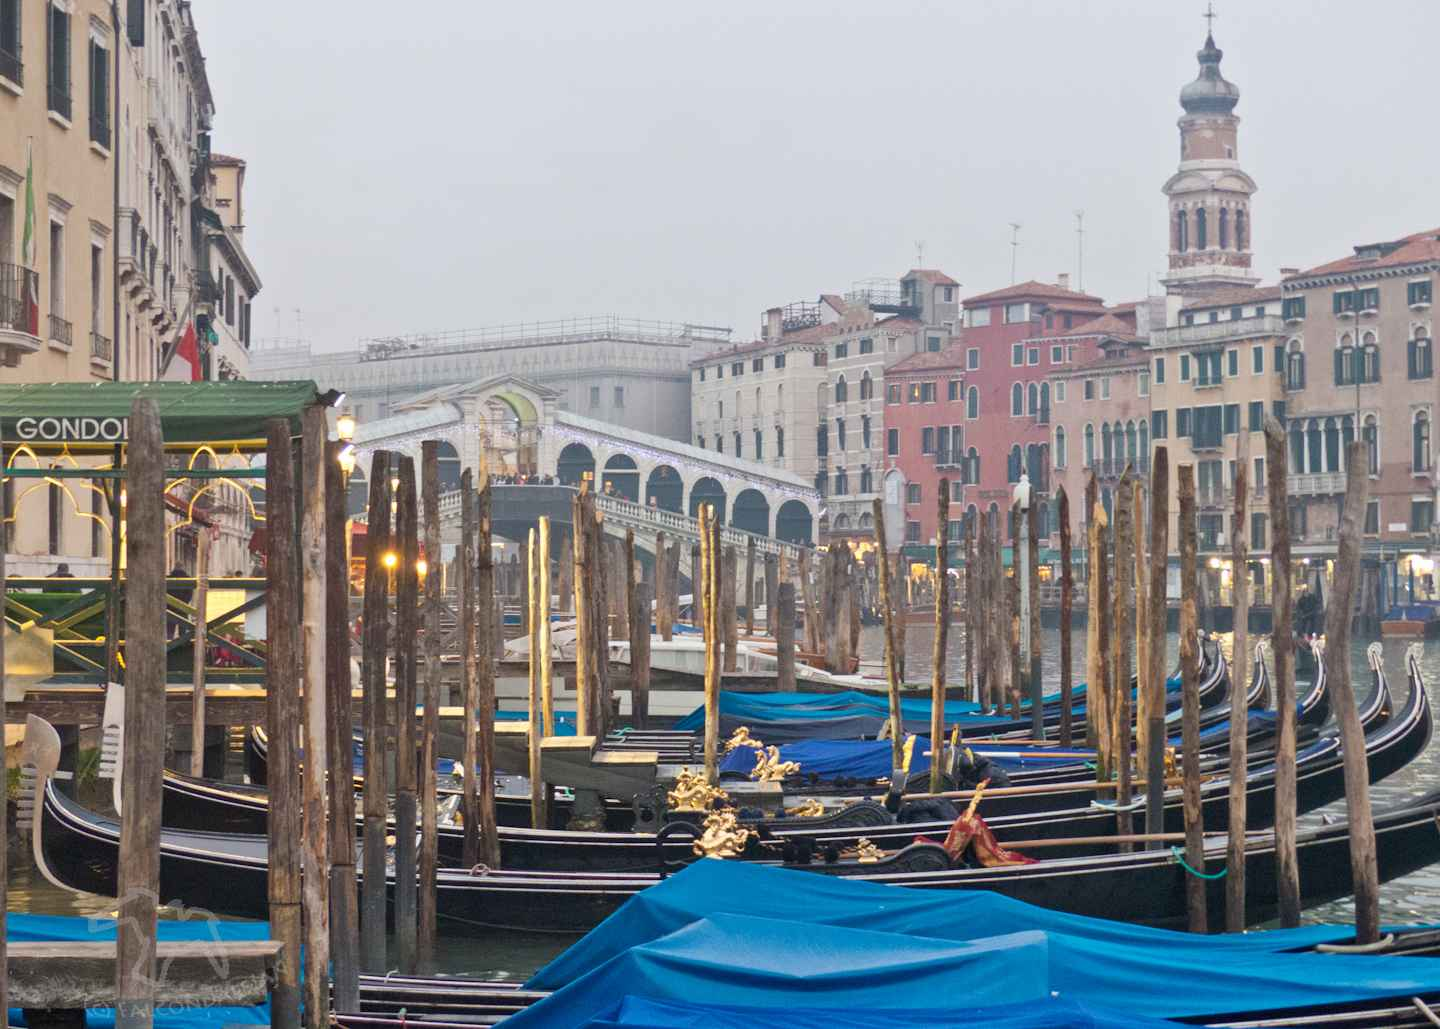 Can parents find romance in Venice with kids in tow or is it best to go without the children? Tips for Mums and Dads visiting the world's most romantic city. Plan a romantic trip to Venice with kids in tow on Falcondale Life blog. Image description: Venice gondolas and Rialto bridge in winter.